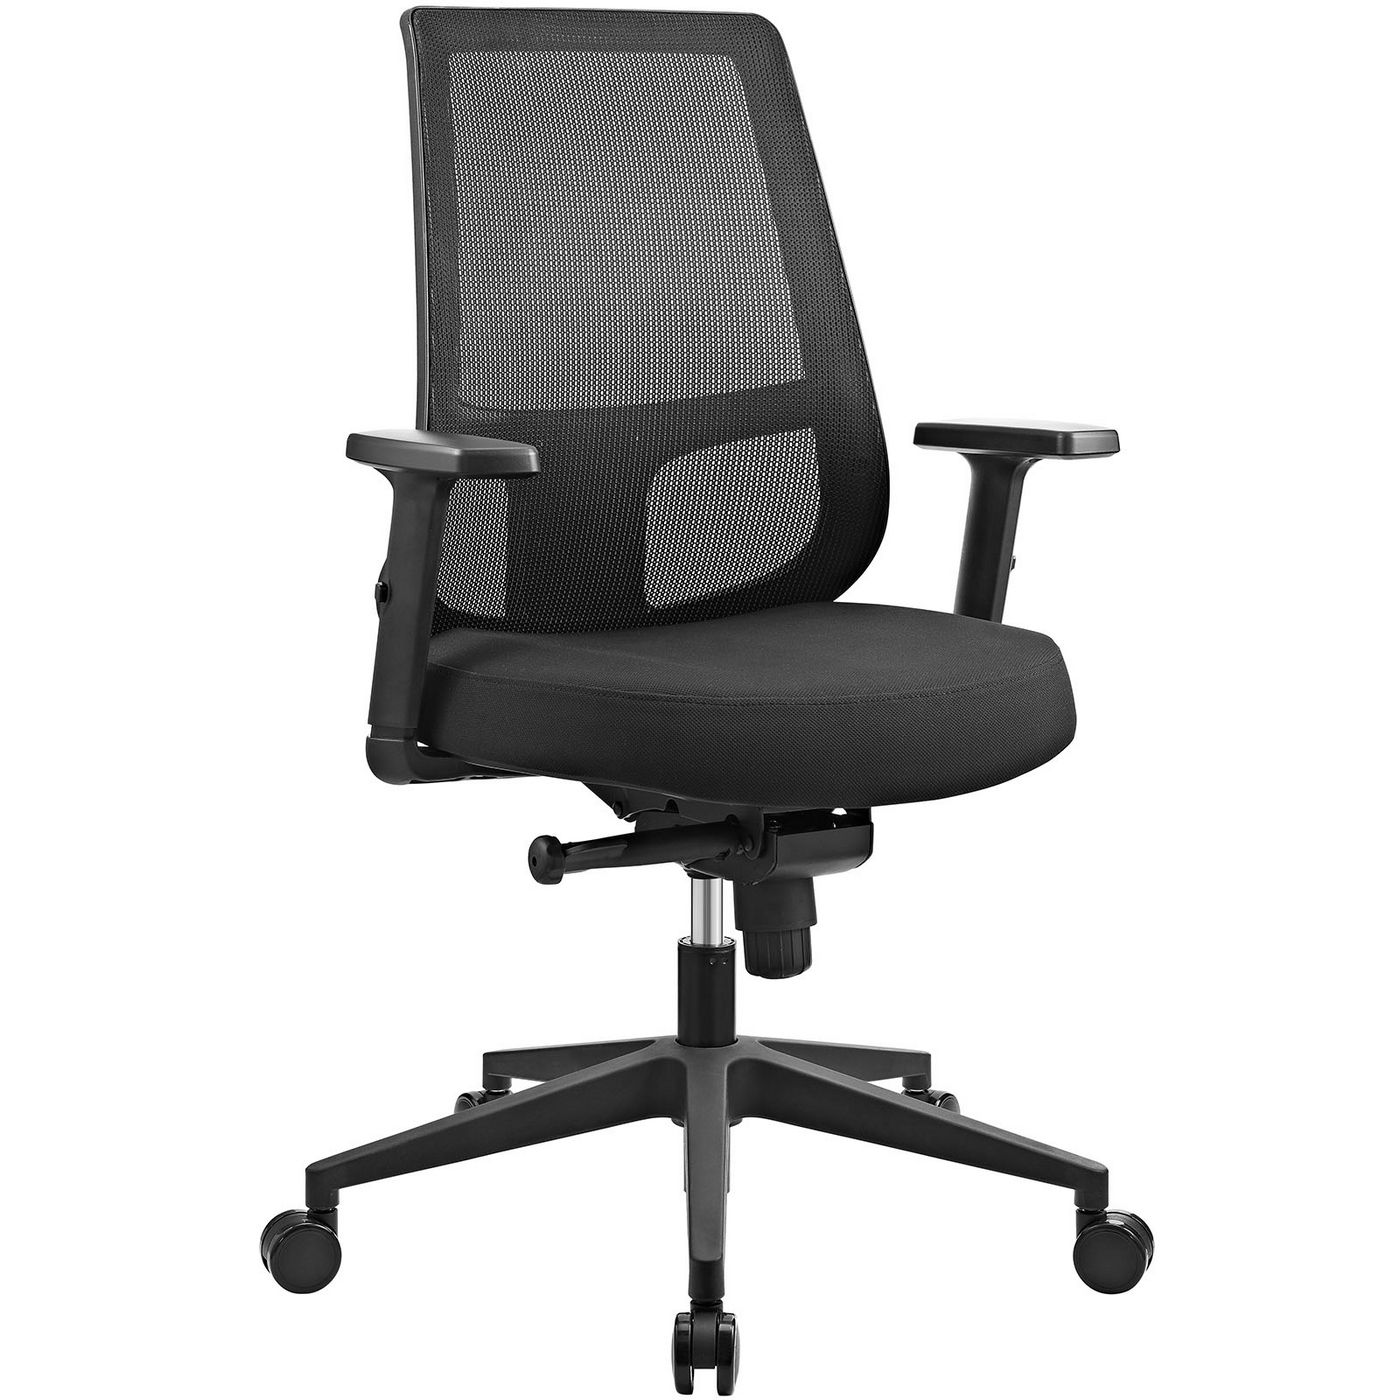 Back Support Office Chair Pump Ergonomic Mesh Back Office Chair With Lumbar Support